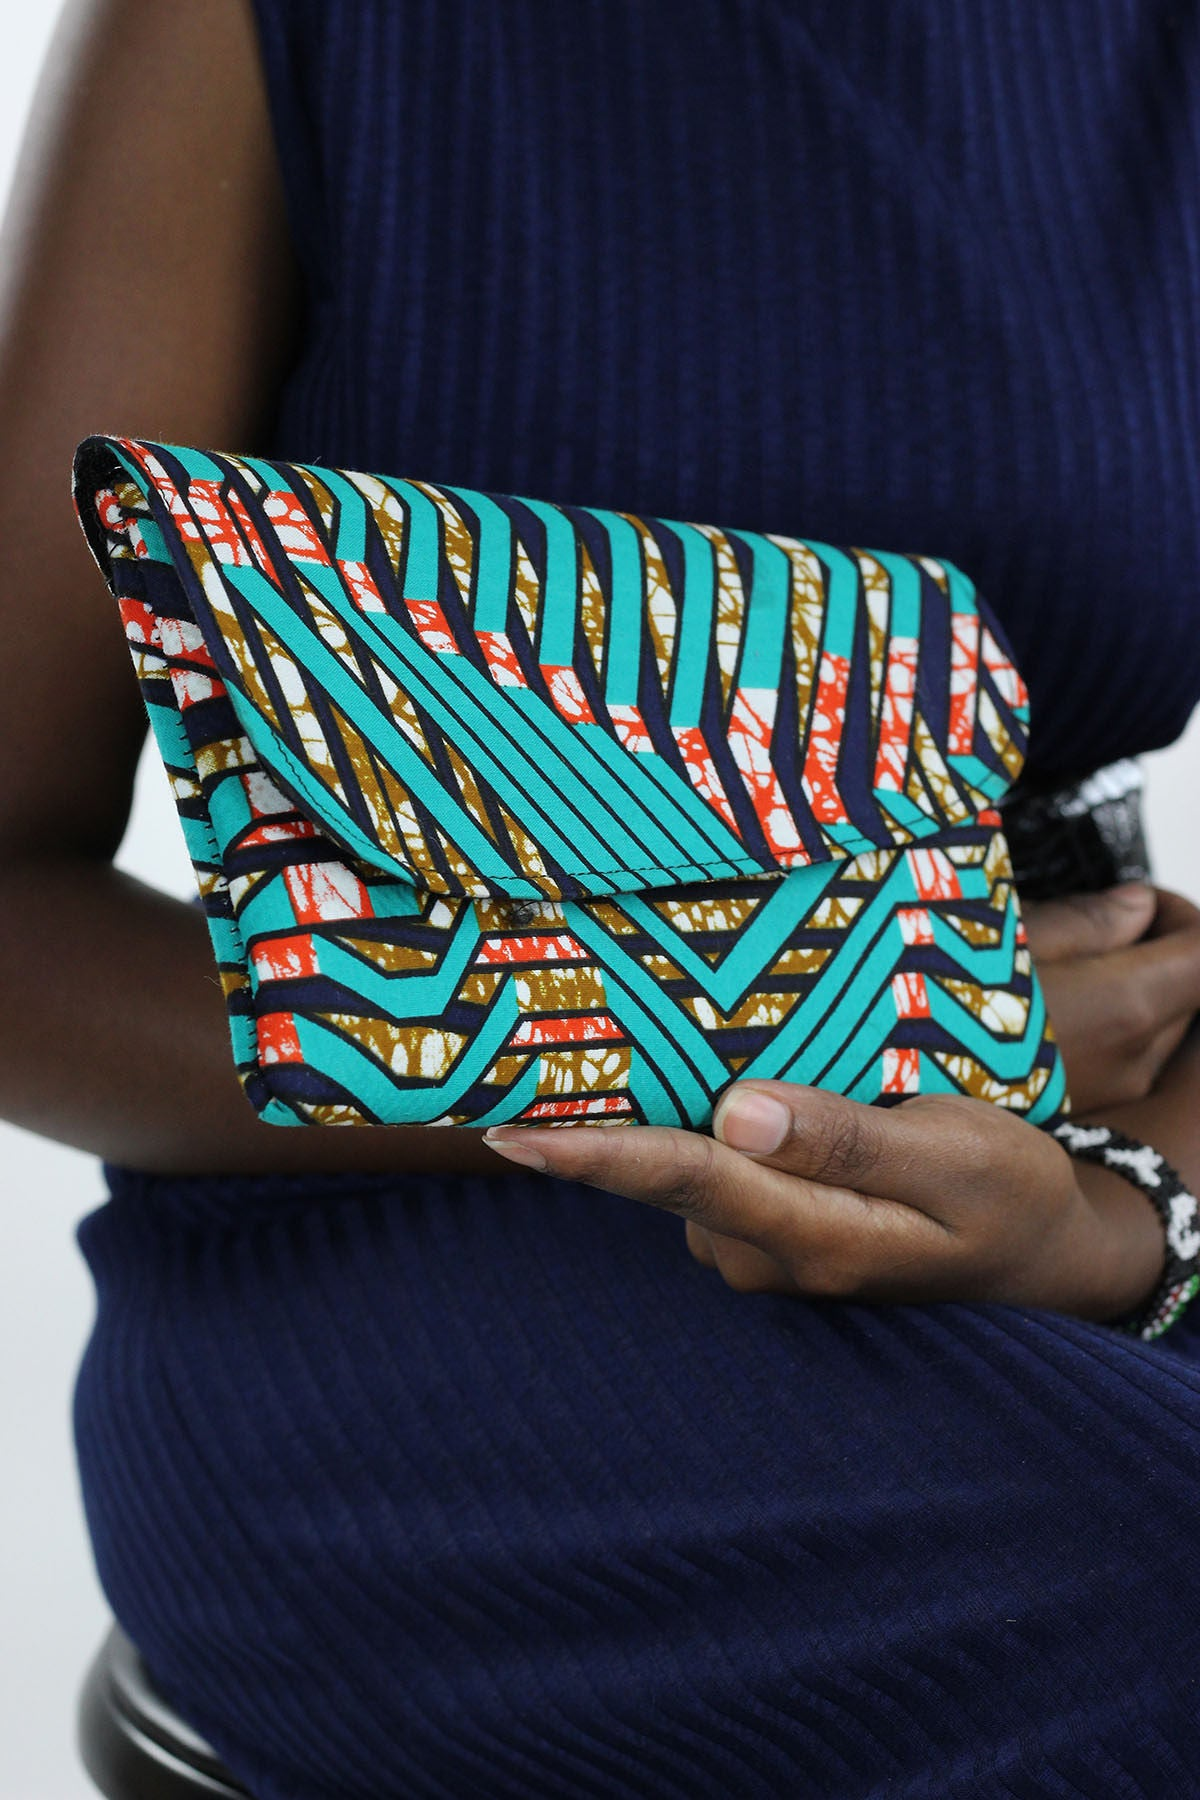 African Print Clutch Purse- Teal/Black loral Print - Africas Closet